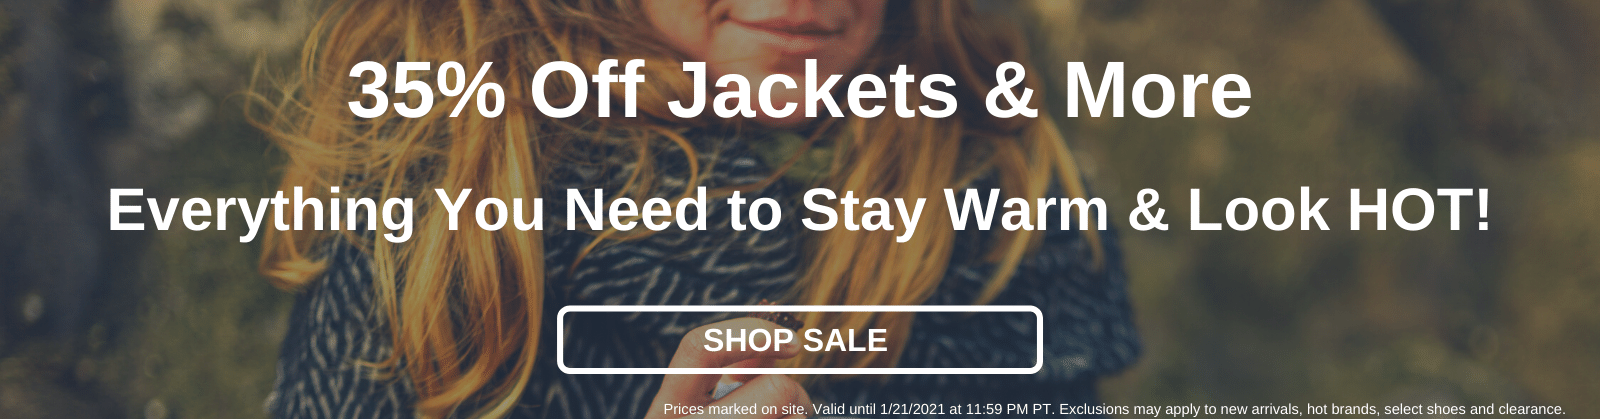 35% Off Jackets & More Everything you need to stay warm & look HOT! [Shop Sale]